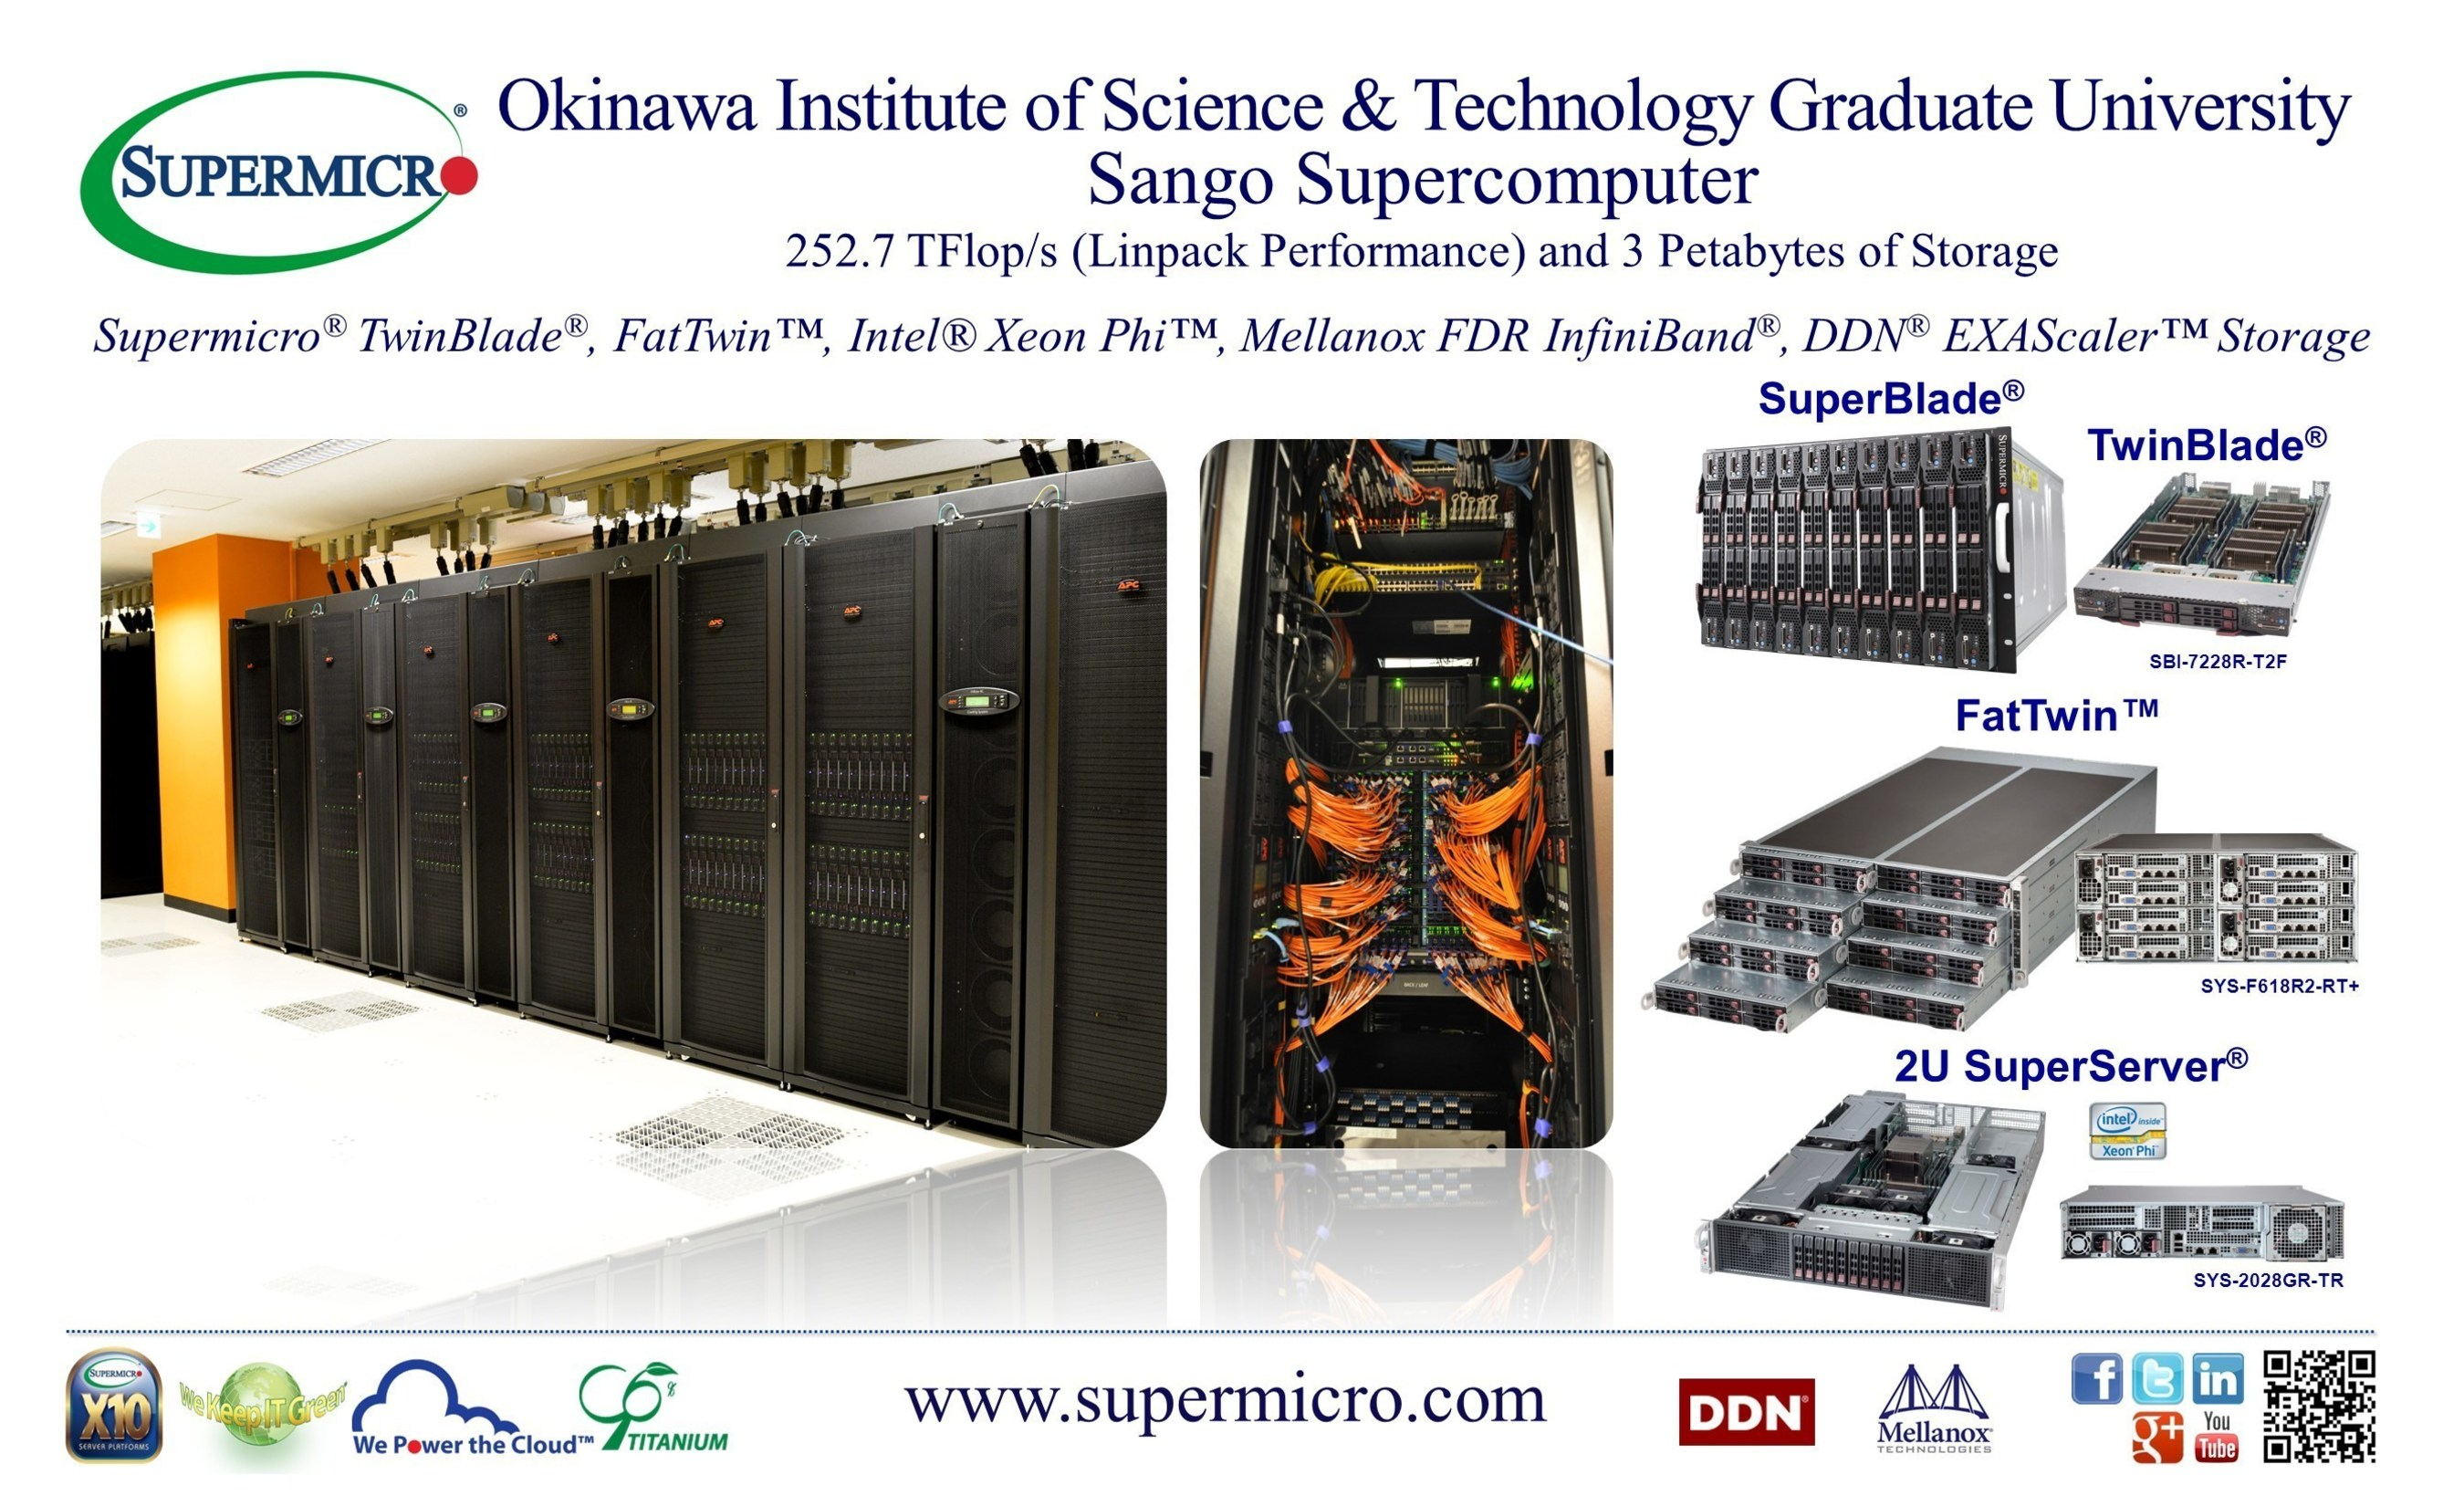 Okinawa Institute of Science & Technology Graduate University Sango Supercomputer